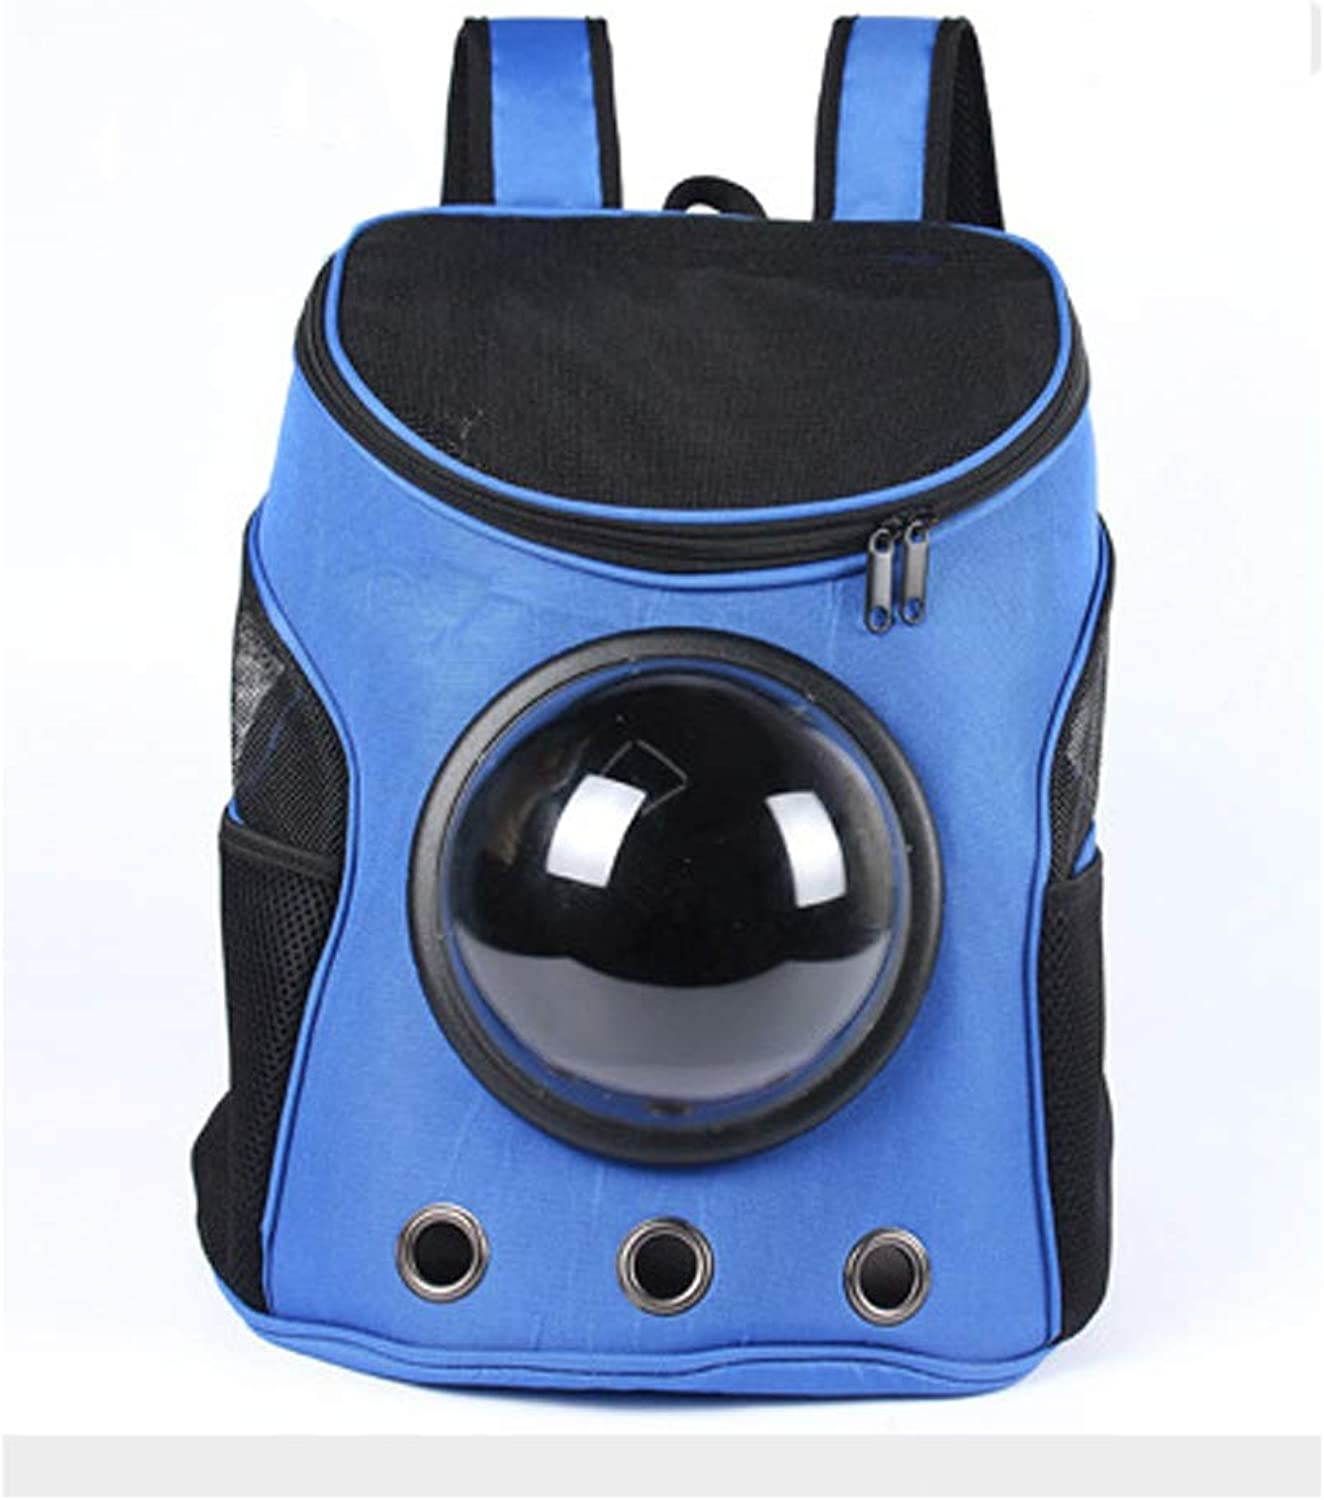 ACLBB Pet space capsule backpack, travel breathable backpack, portable capsule design, cat and puppy,bluee